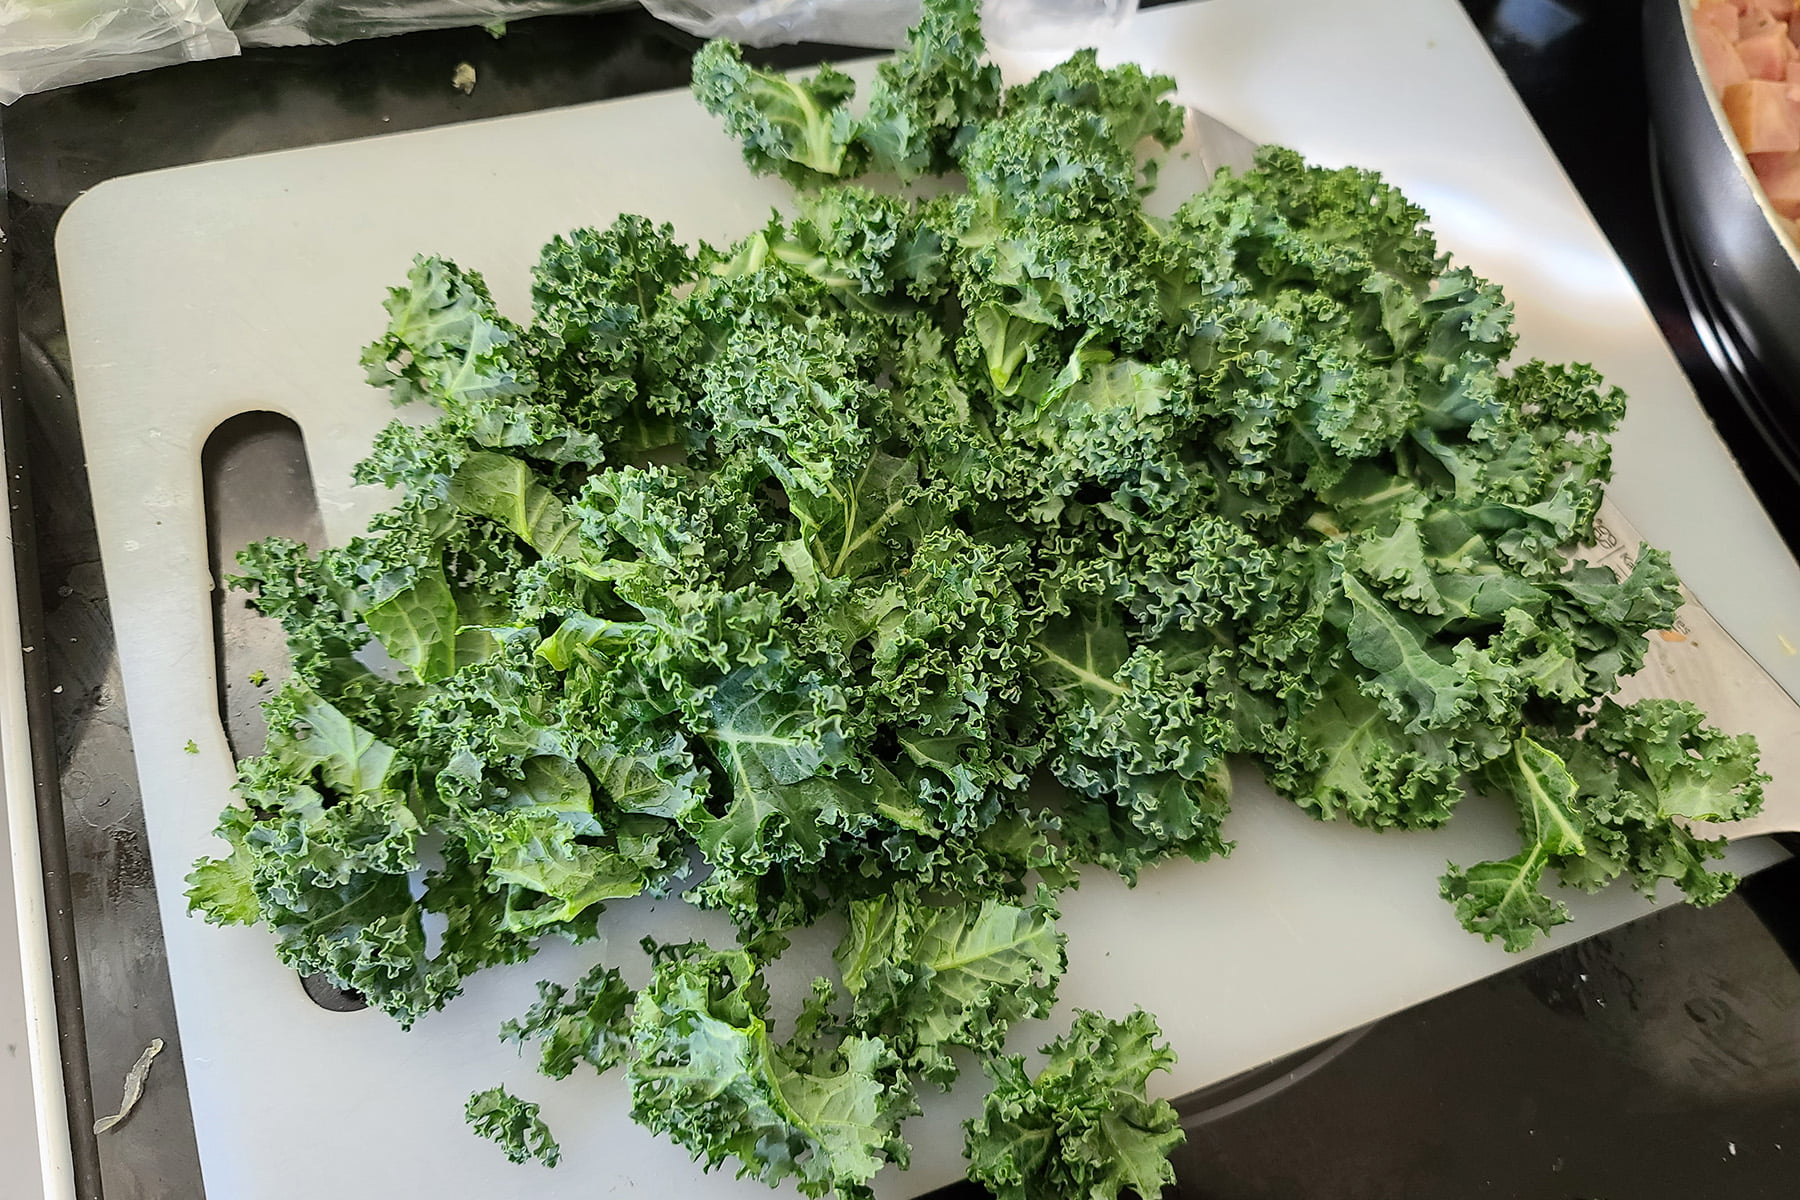 A pile of fresh kale on a cutting board.